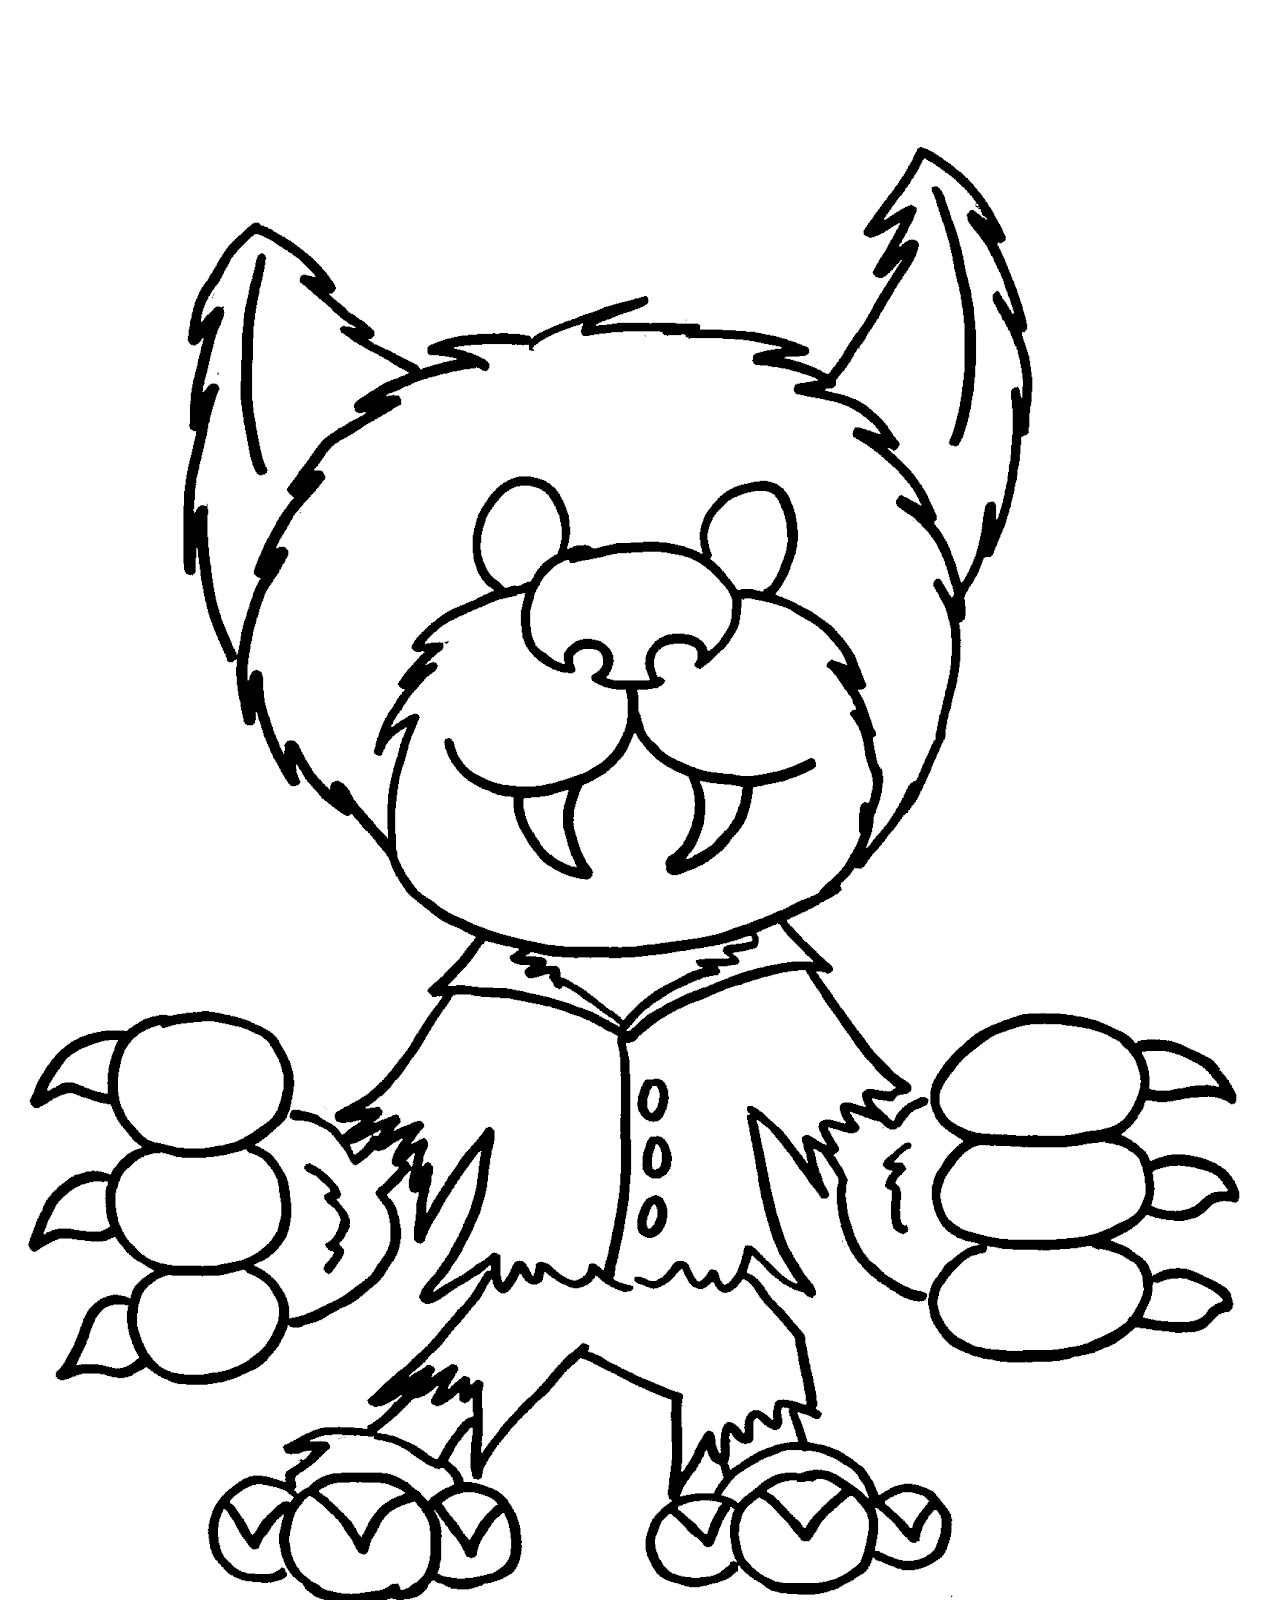 werewolf coloring pages printable free werewolf coloring pages coloring home printable coloring pages werewolf